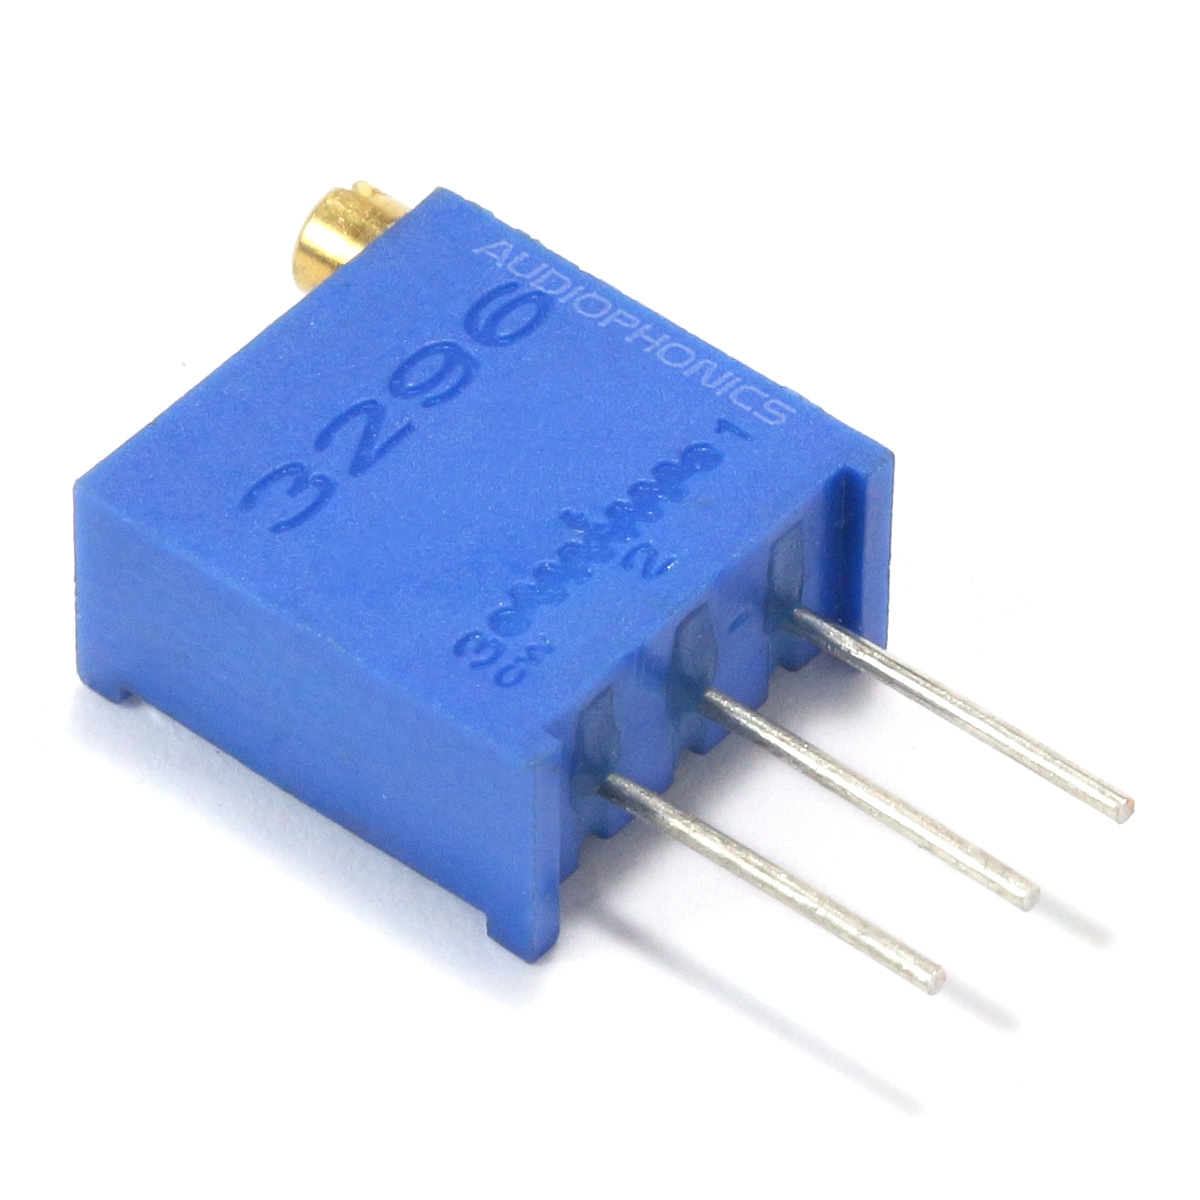 3296W-1-502 Multiturn Trimming Potentiometer 5K ohms